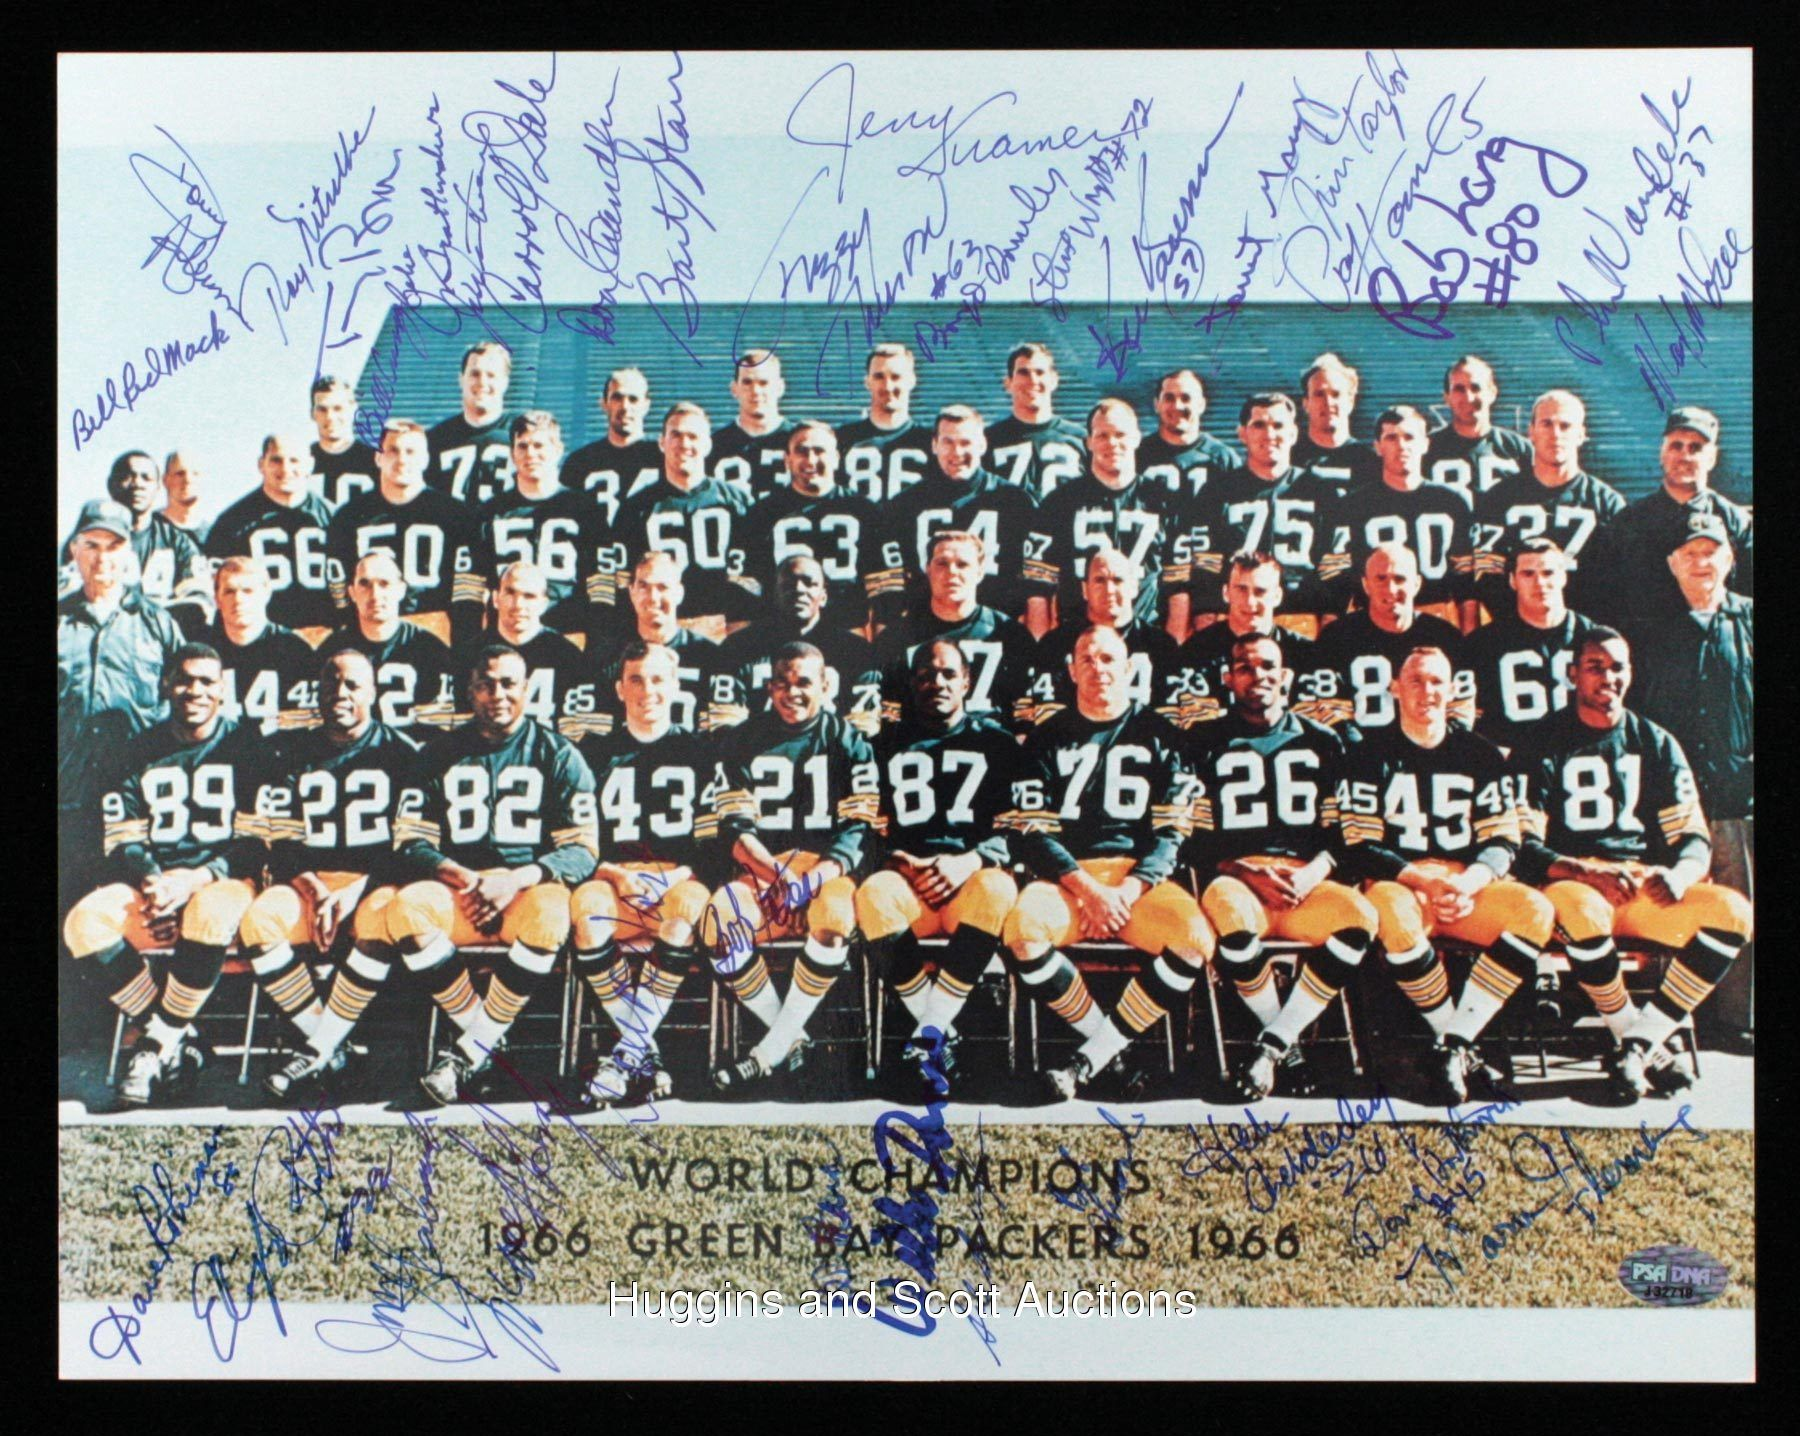 1966 Green Bay Packers World Champions Team Signed 11x14 Photo Green Bay Packers Green Bay Packers Team Green Packers